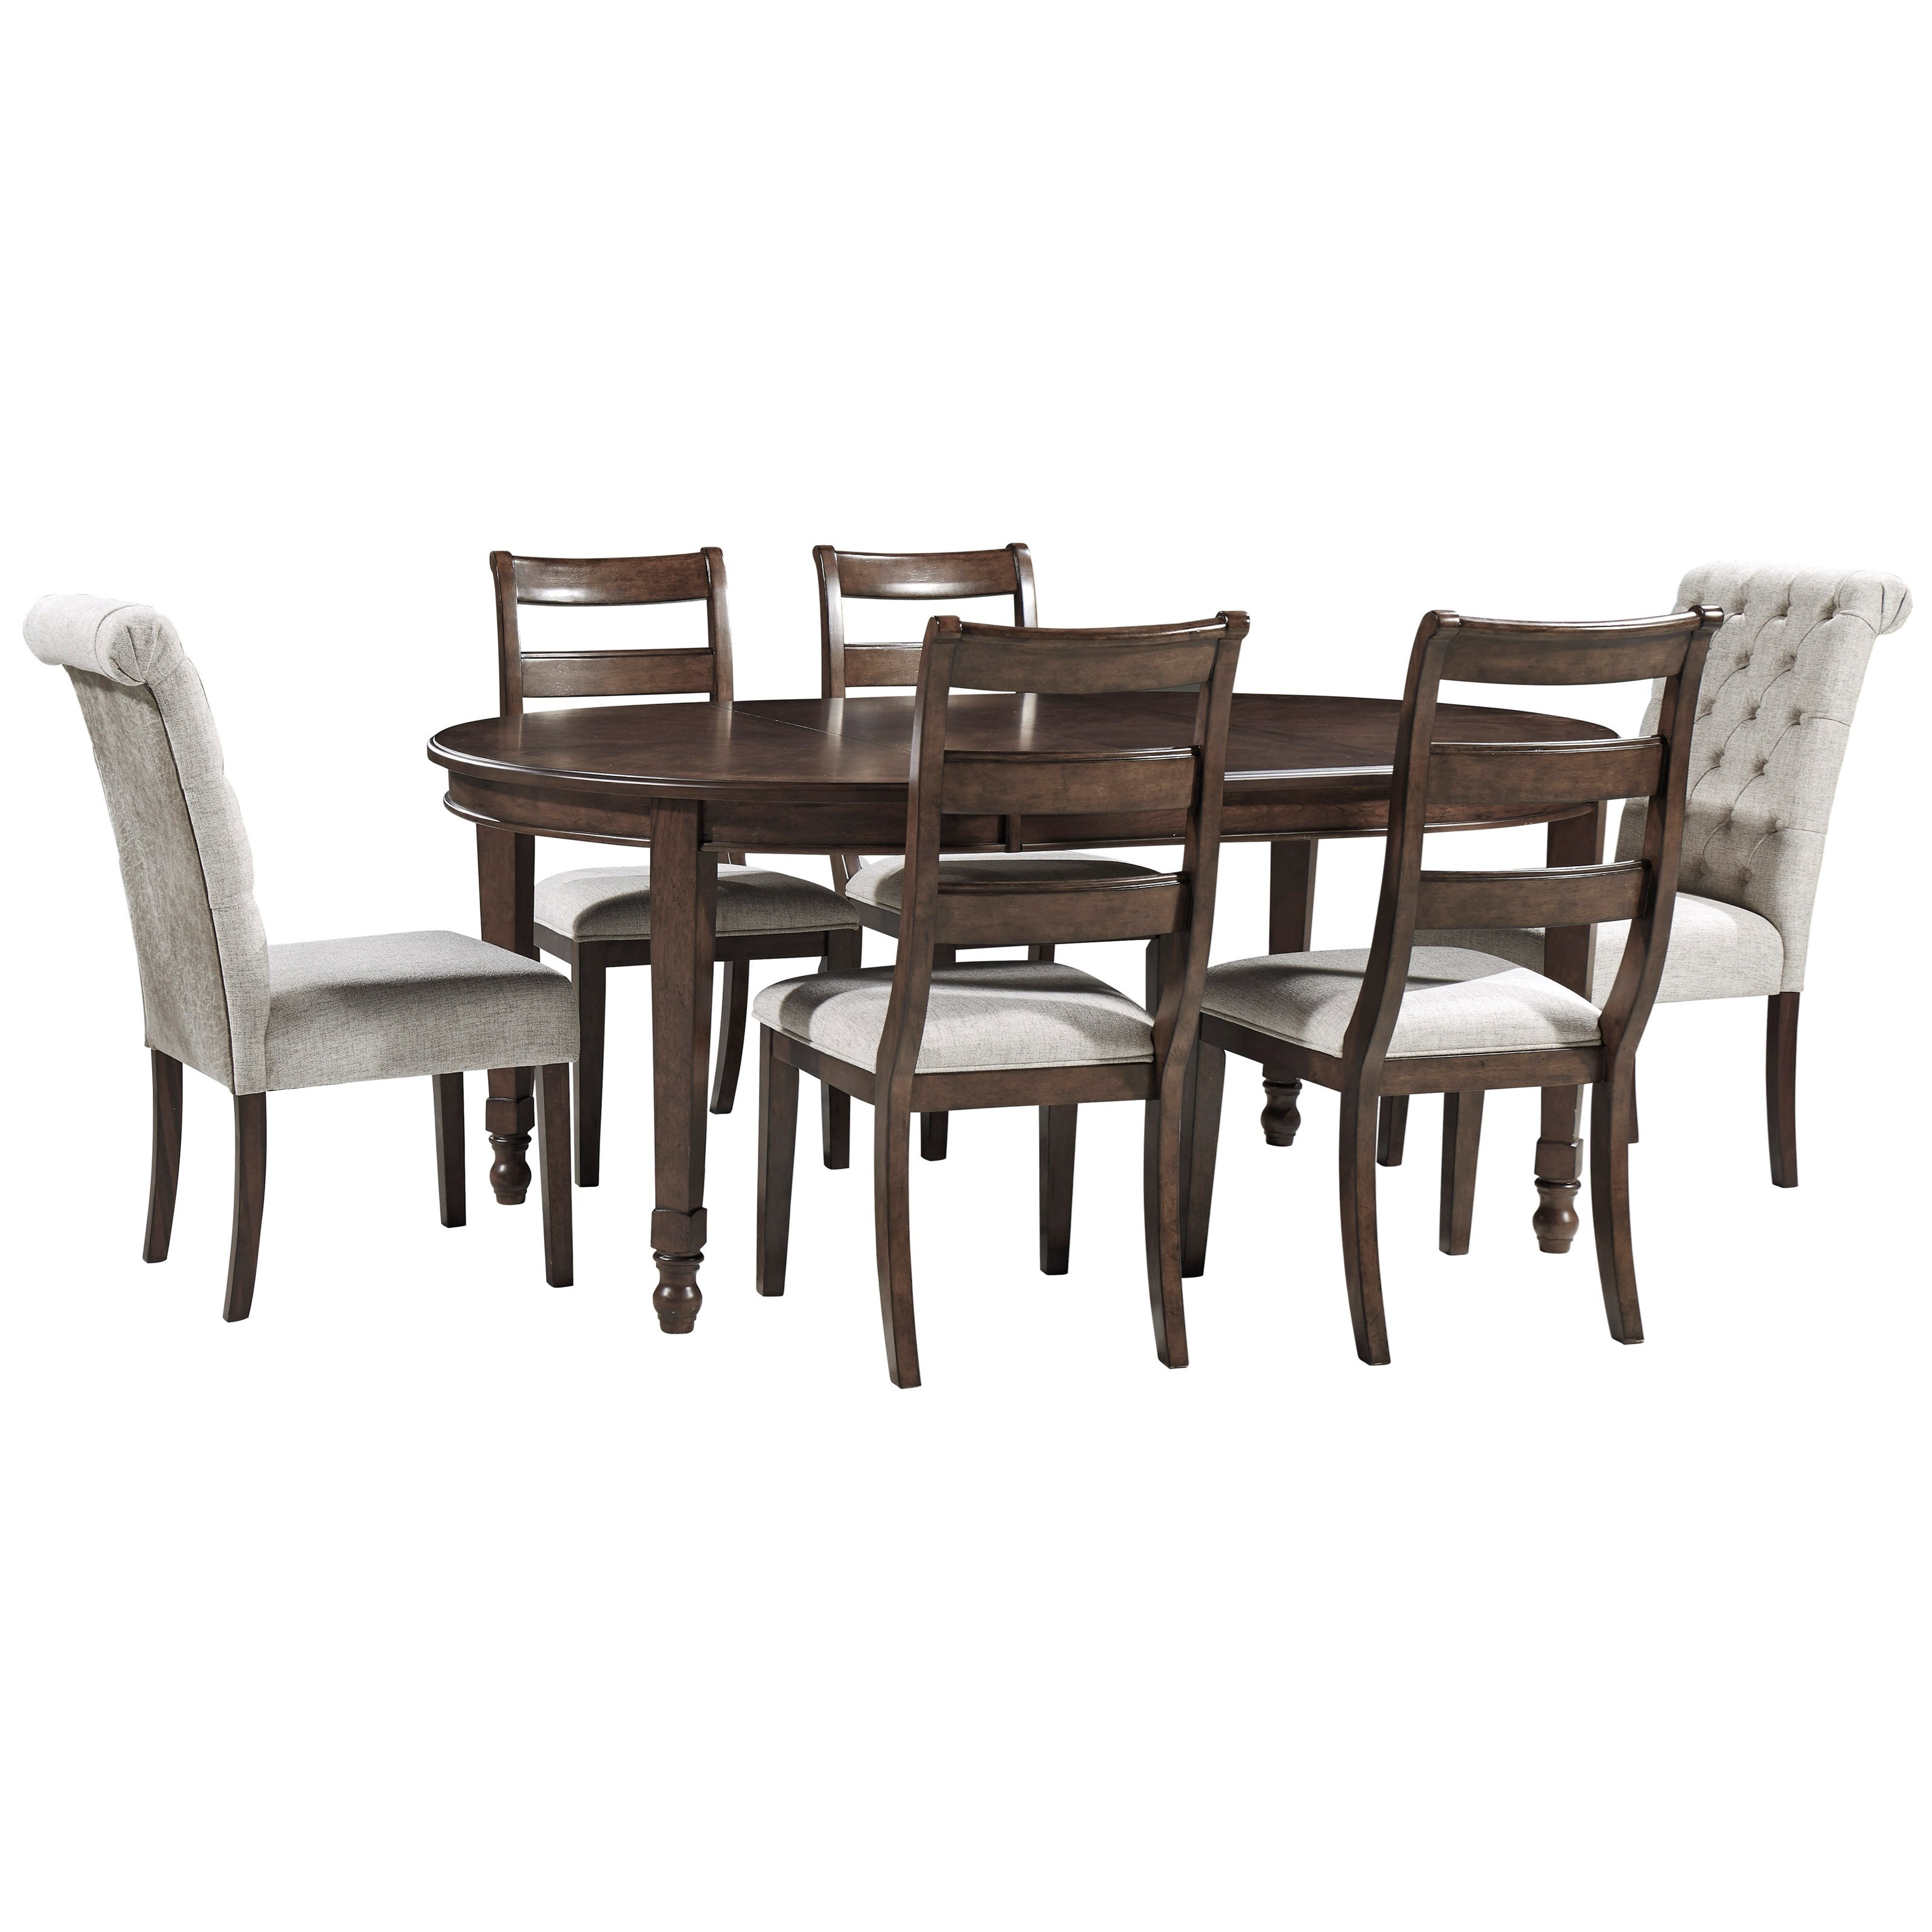 Adinton 7-Piece Table and Chair Set by Signature Design by Ashley at Beds N Stuff